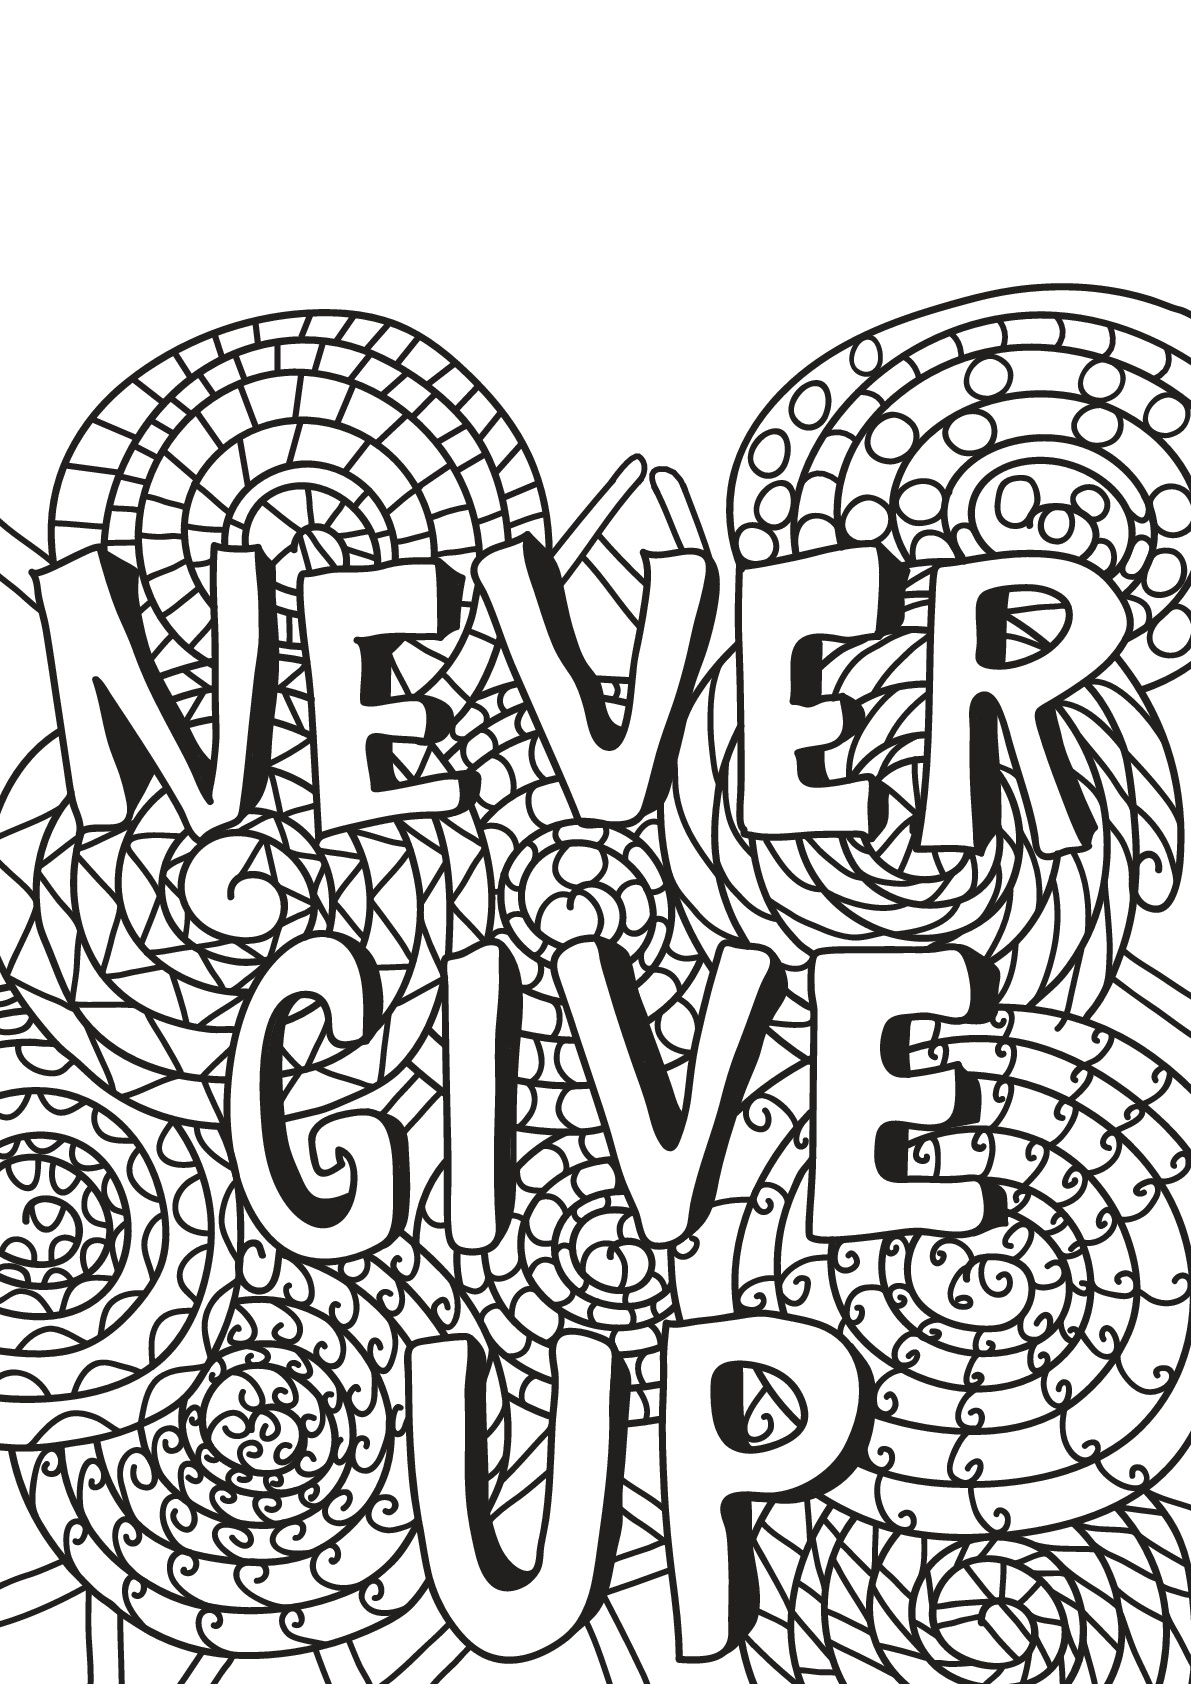 Free book quote 14 - Quotes Adult Coloring Pages